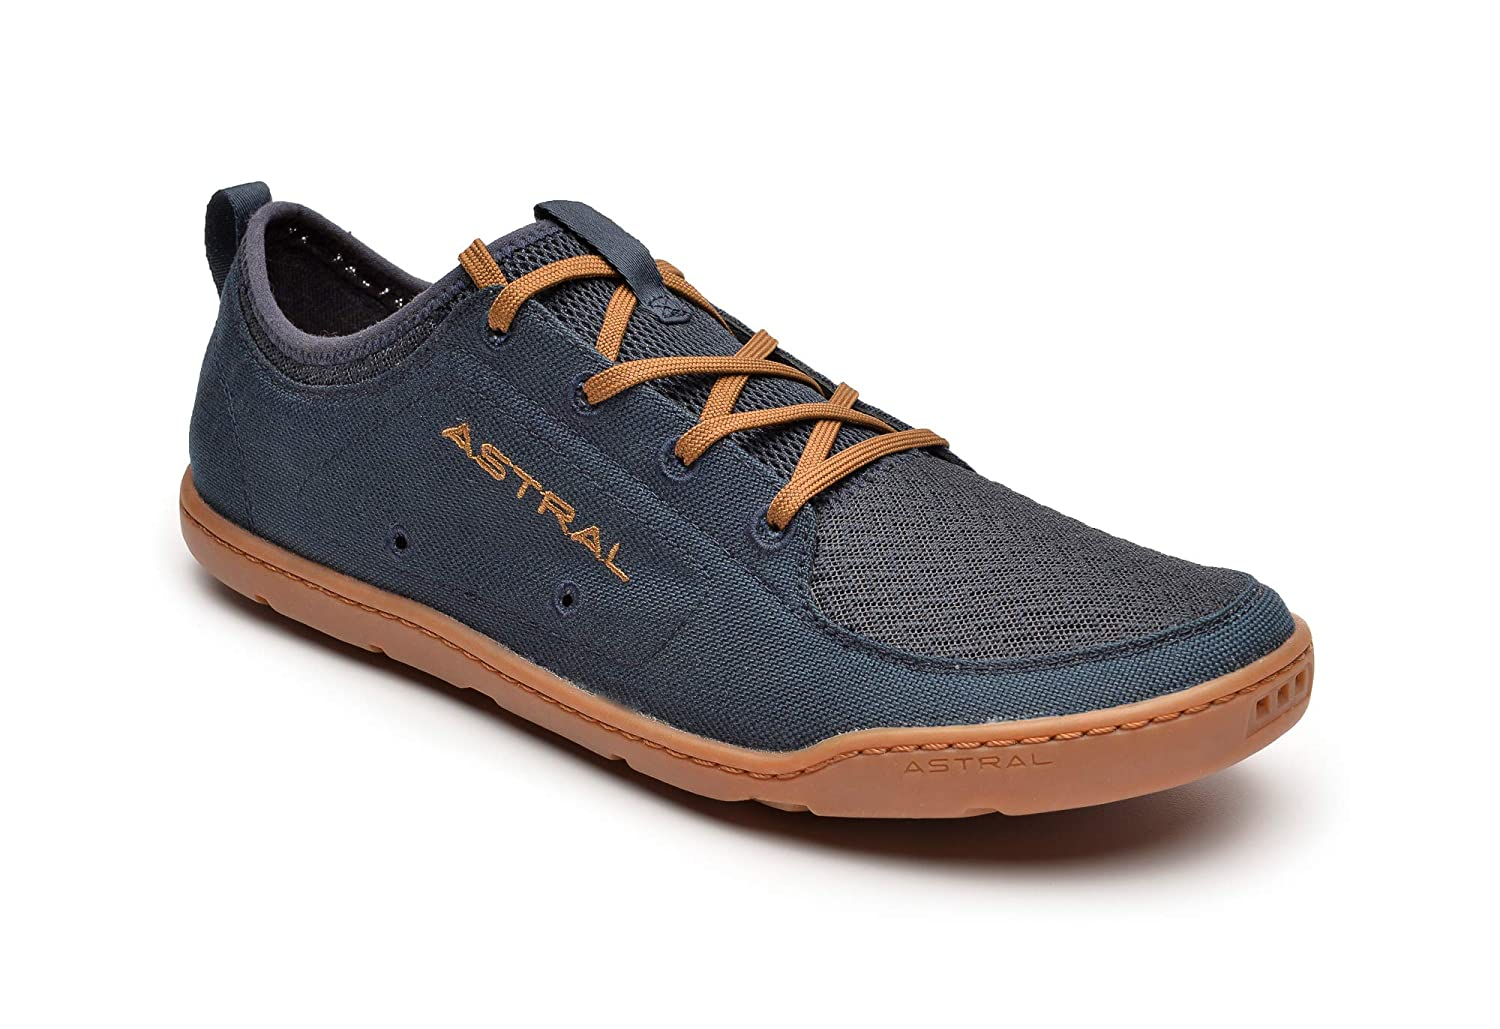 Astral - Men's Loyak Outdoor Shoe for Water, Casual, Boat, and Travel LYMBKBN10